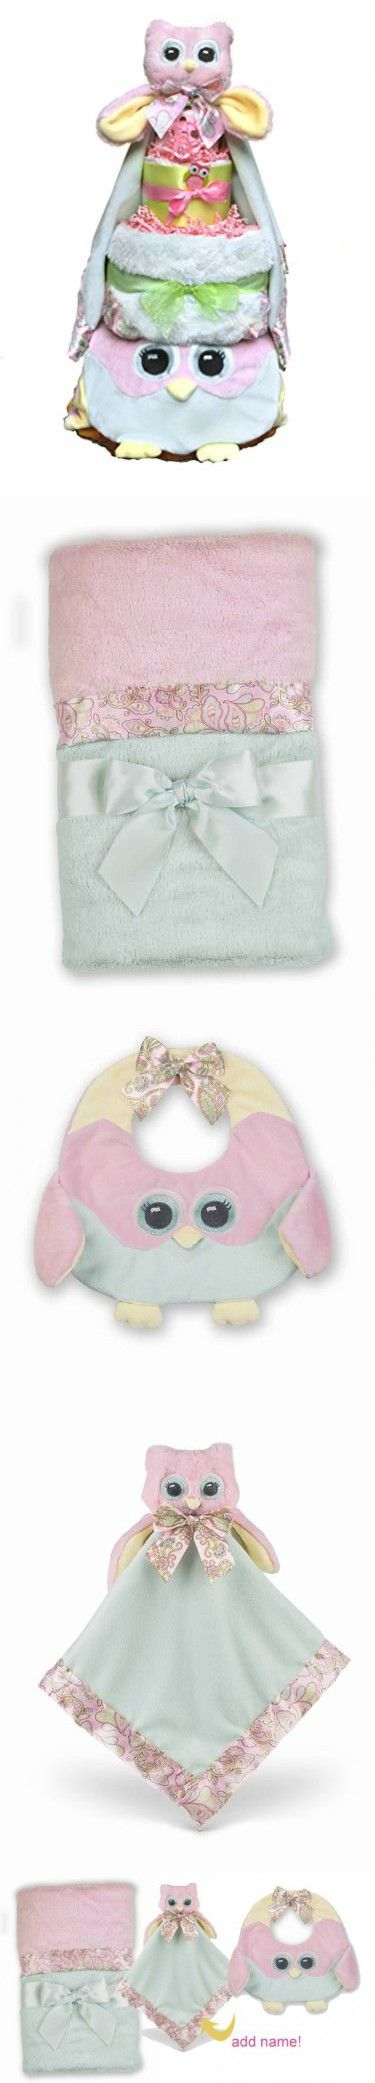 Owl Diaper Cake-cute Baby Girl Gift for Baby Shower--Pink Diaper Cake Makes a Perfect Baby Gift Basket